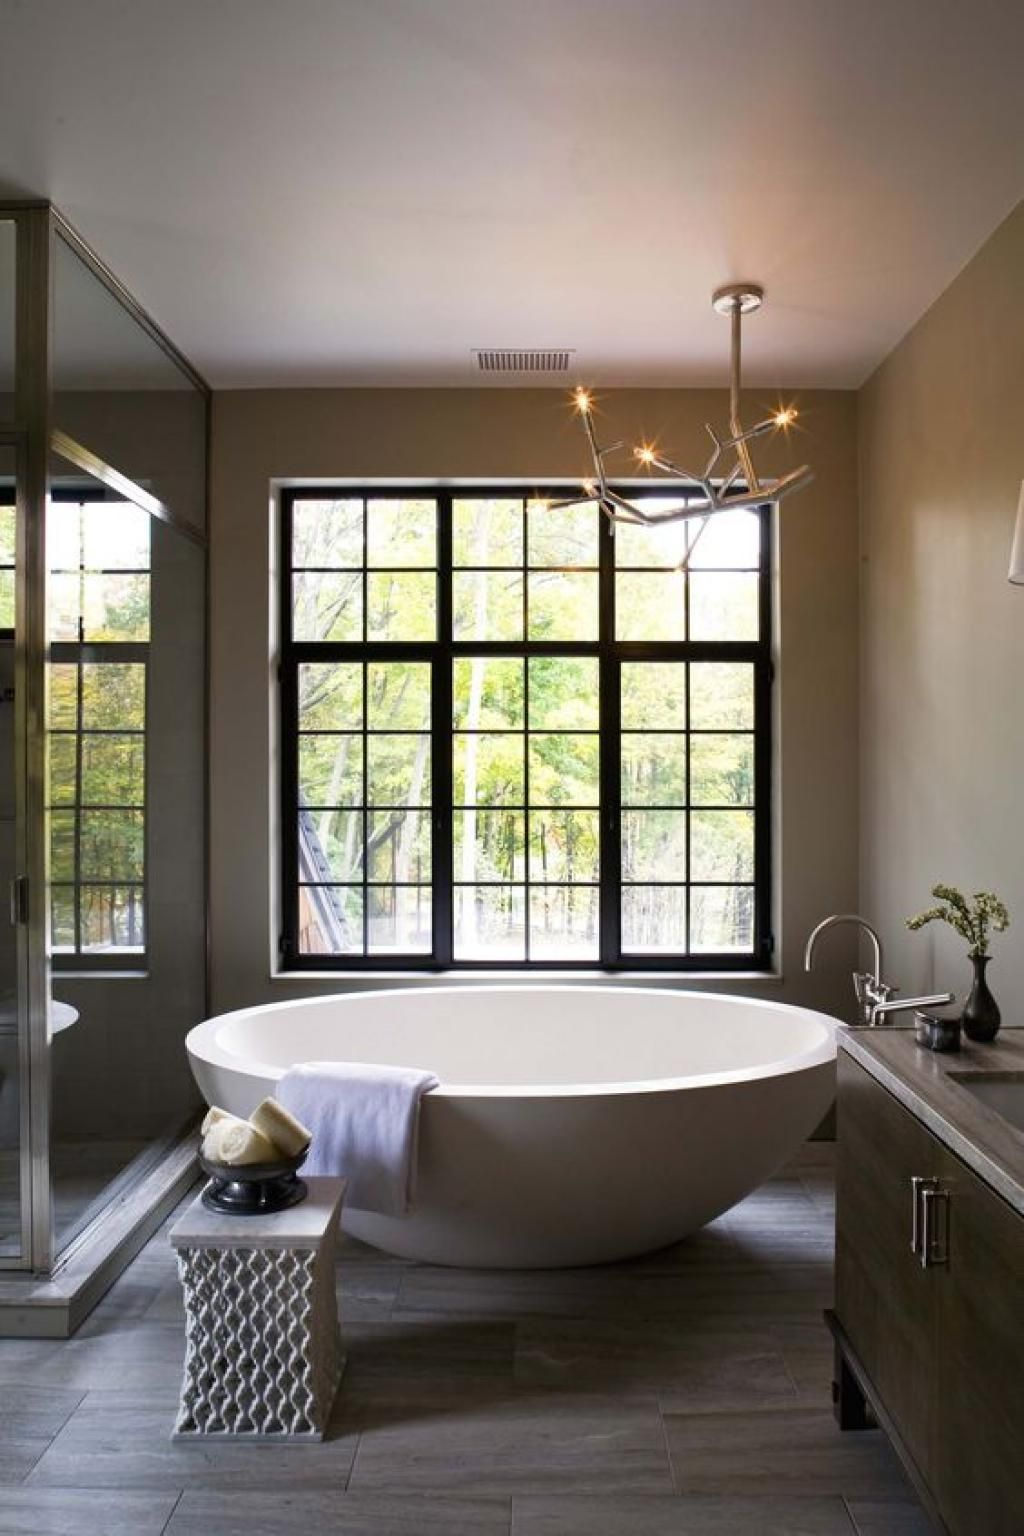 Wonderful Freestanding Bathtubs Bathtubs Minimalist And Natural - 50 wonderful stone bathroom designs